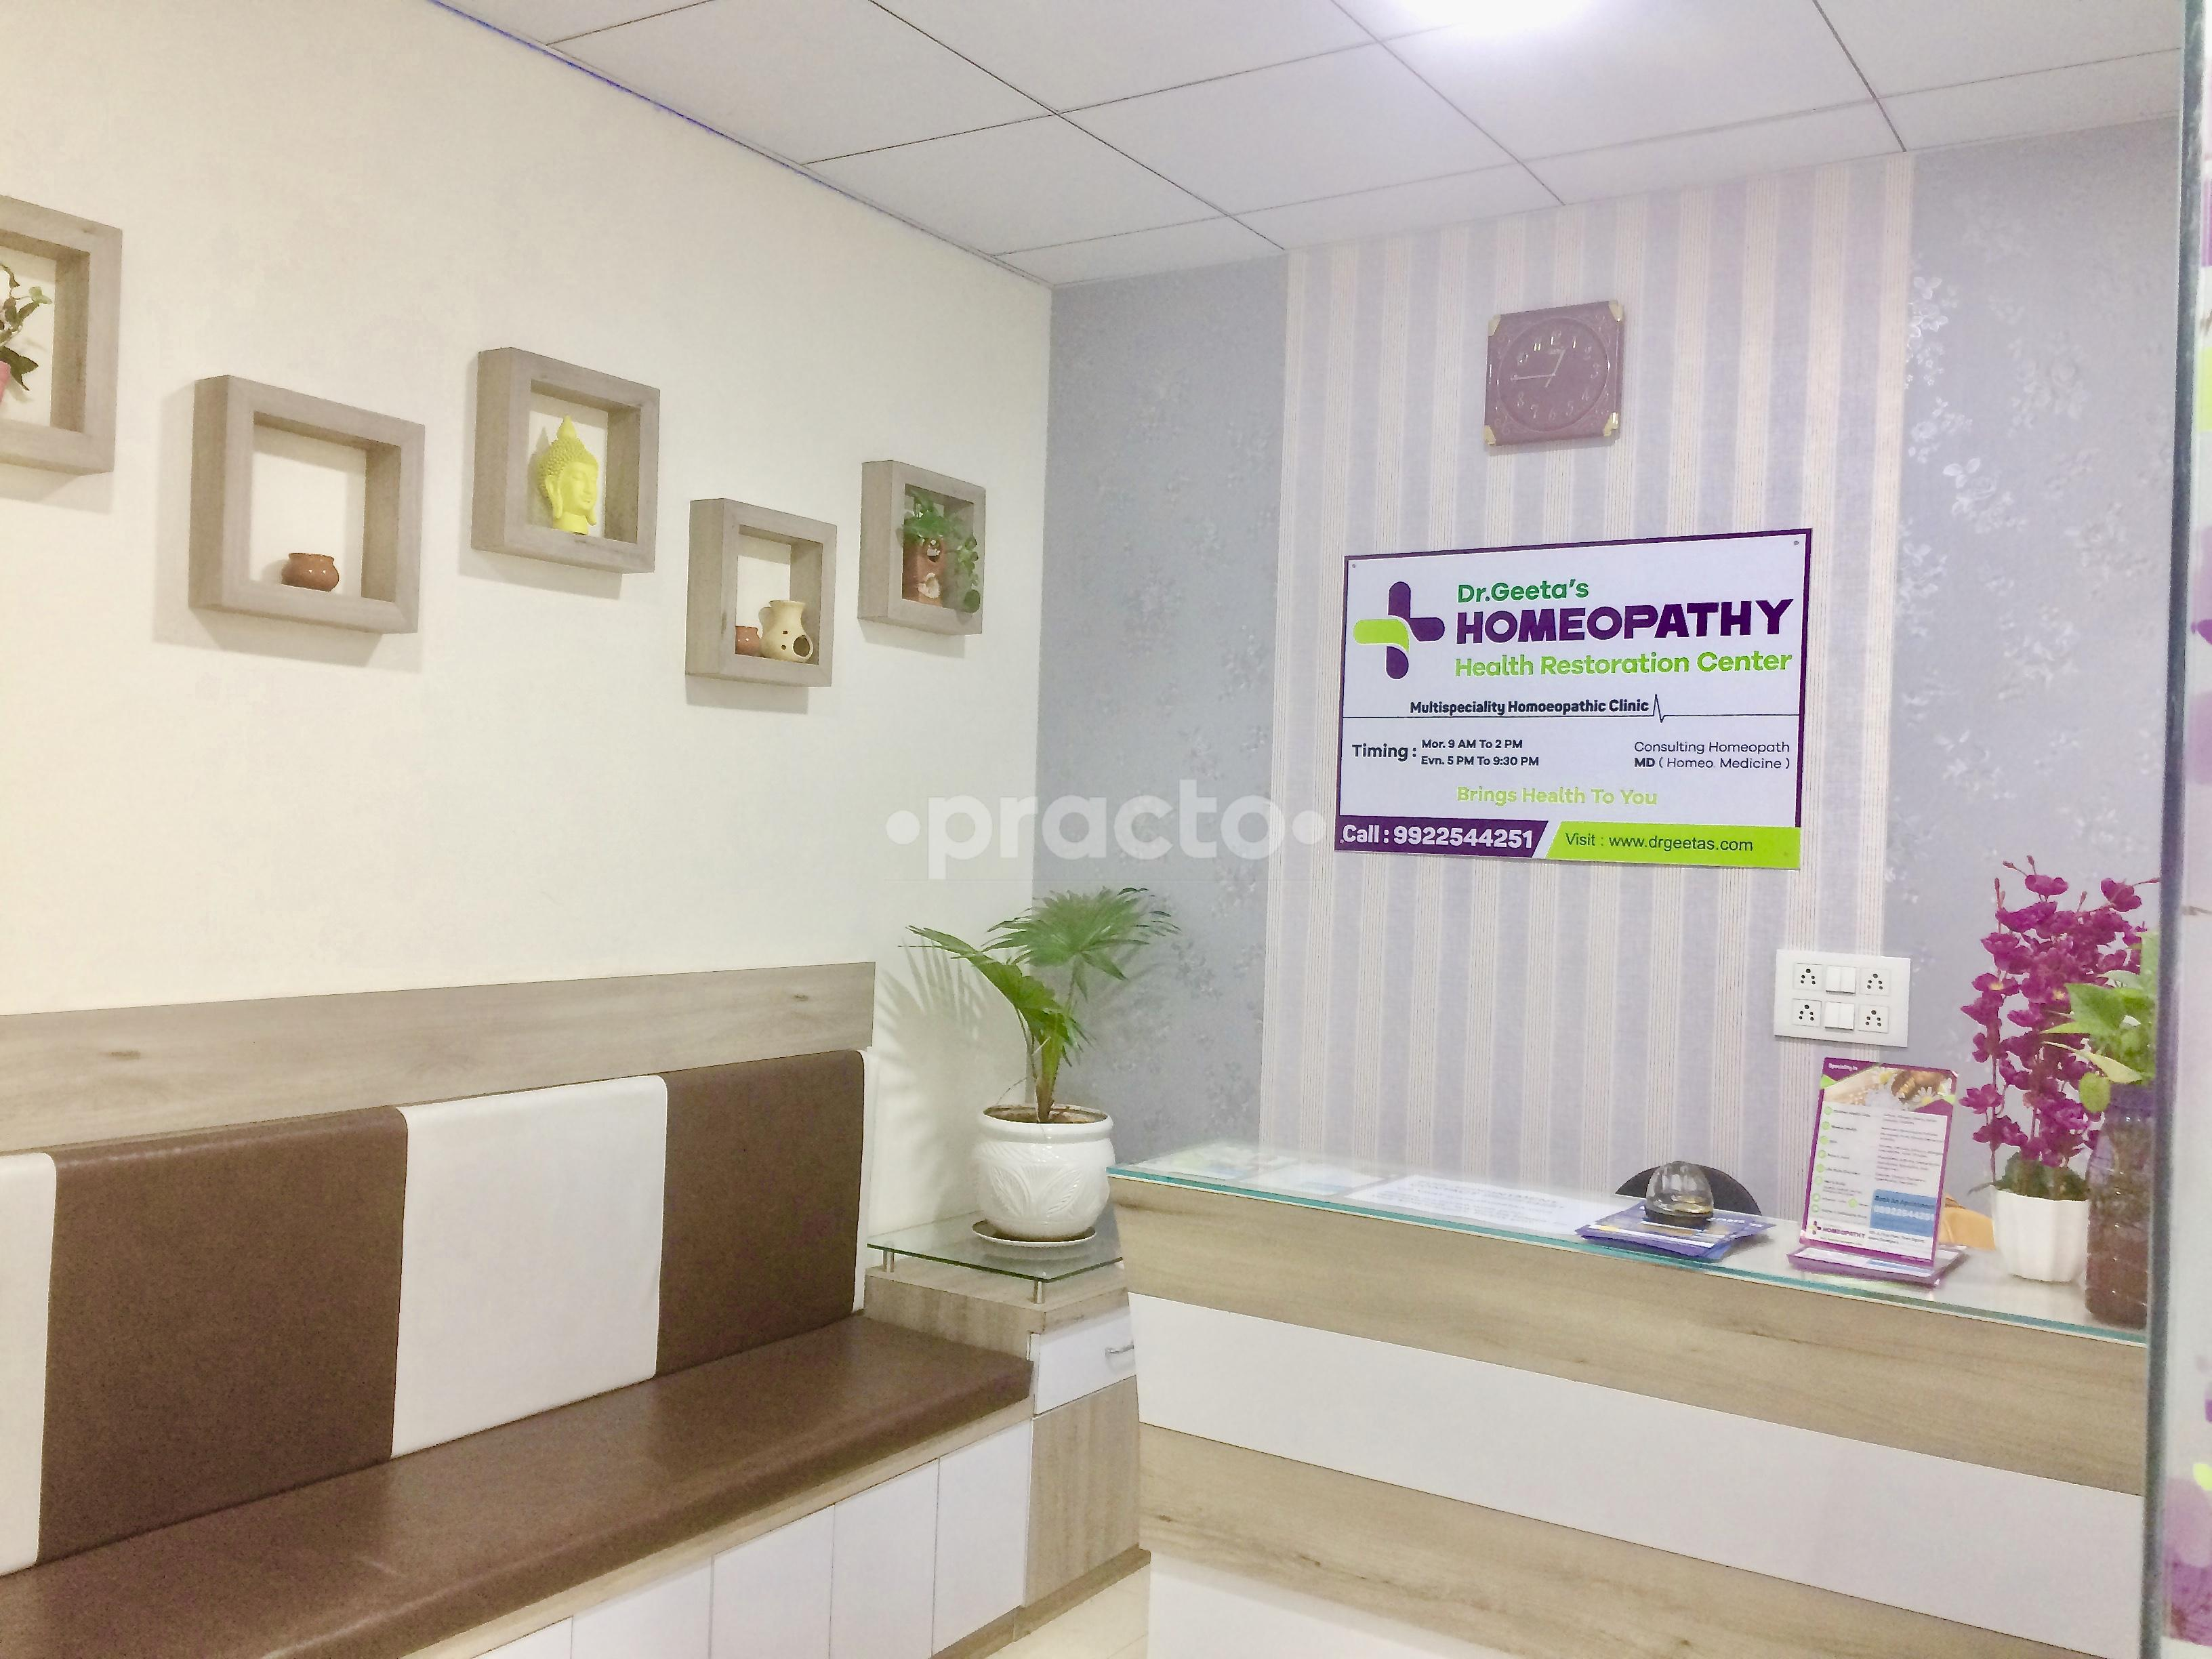 Best Homoeopathy Clinics in Pune - Book Appointment, View